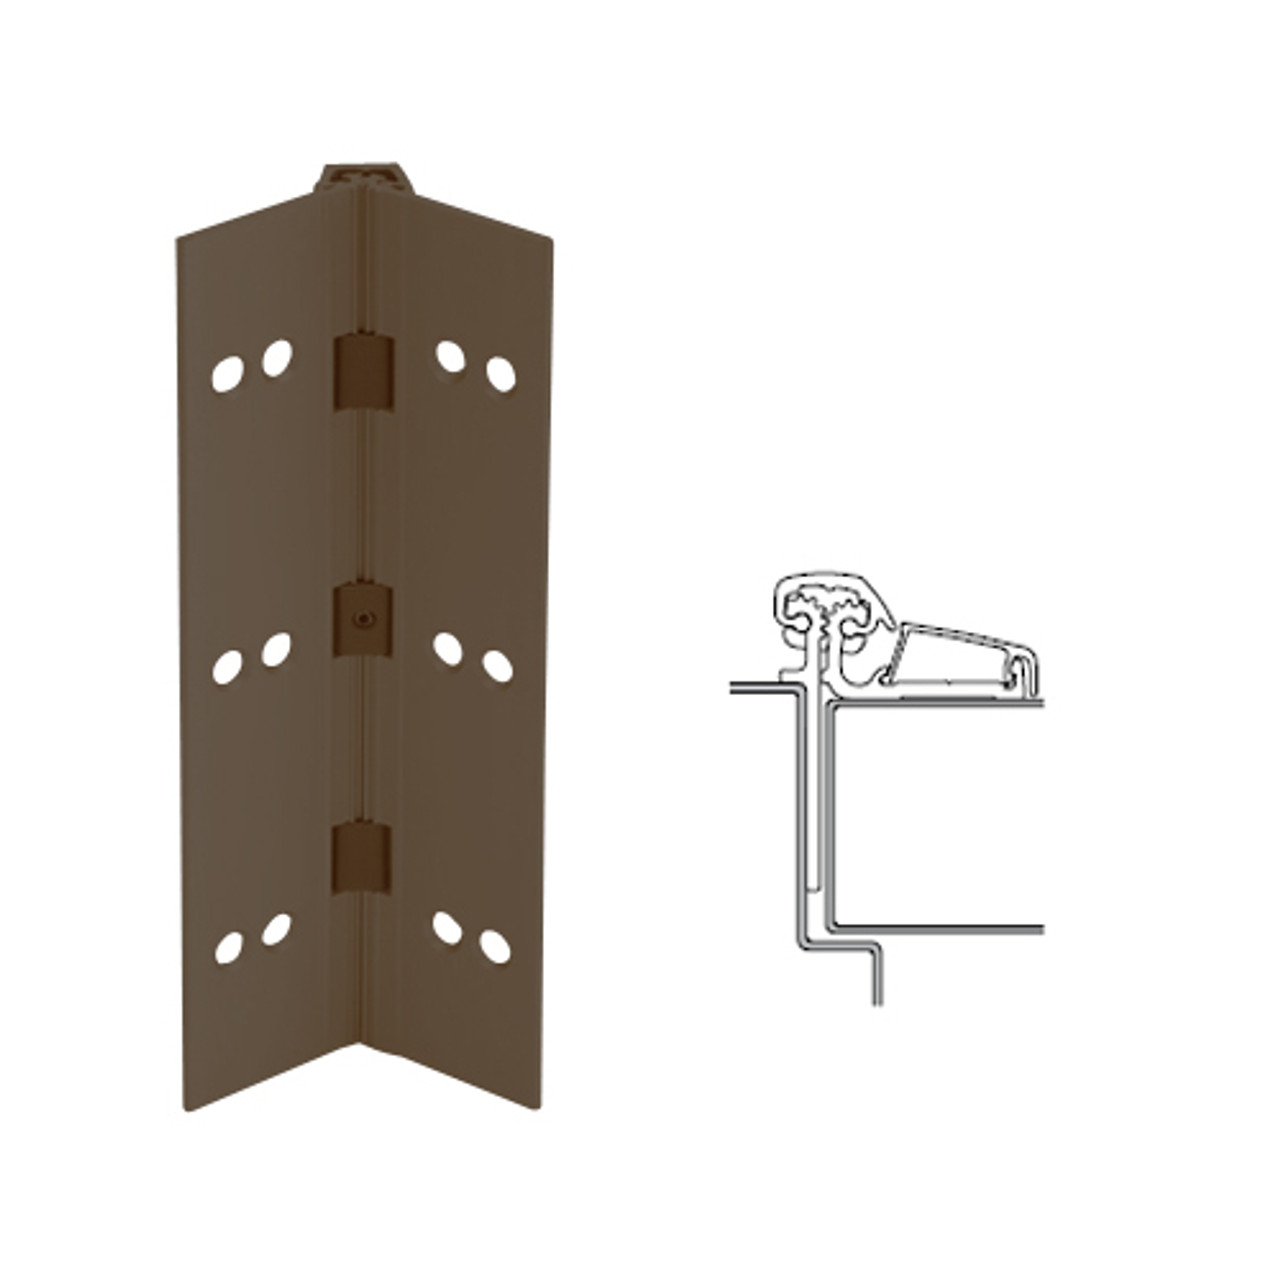 053XY-313AN-83-TF IVES Adjustable Half Surface Continuous Geared Hinges with Thread Forming Screws in Dark Bronze Anodized